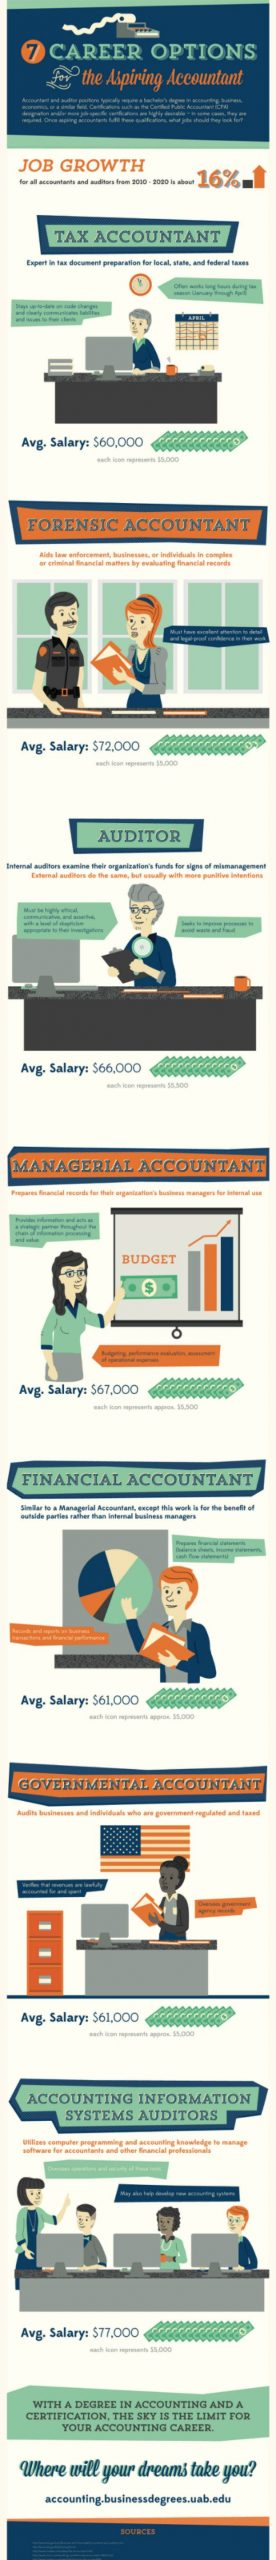 Career Options for Aspiring Accountants [infographic]